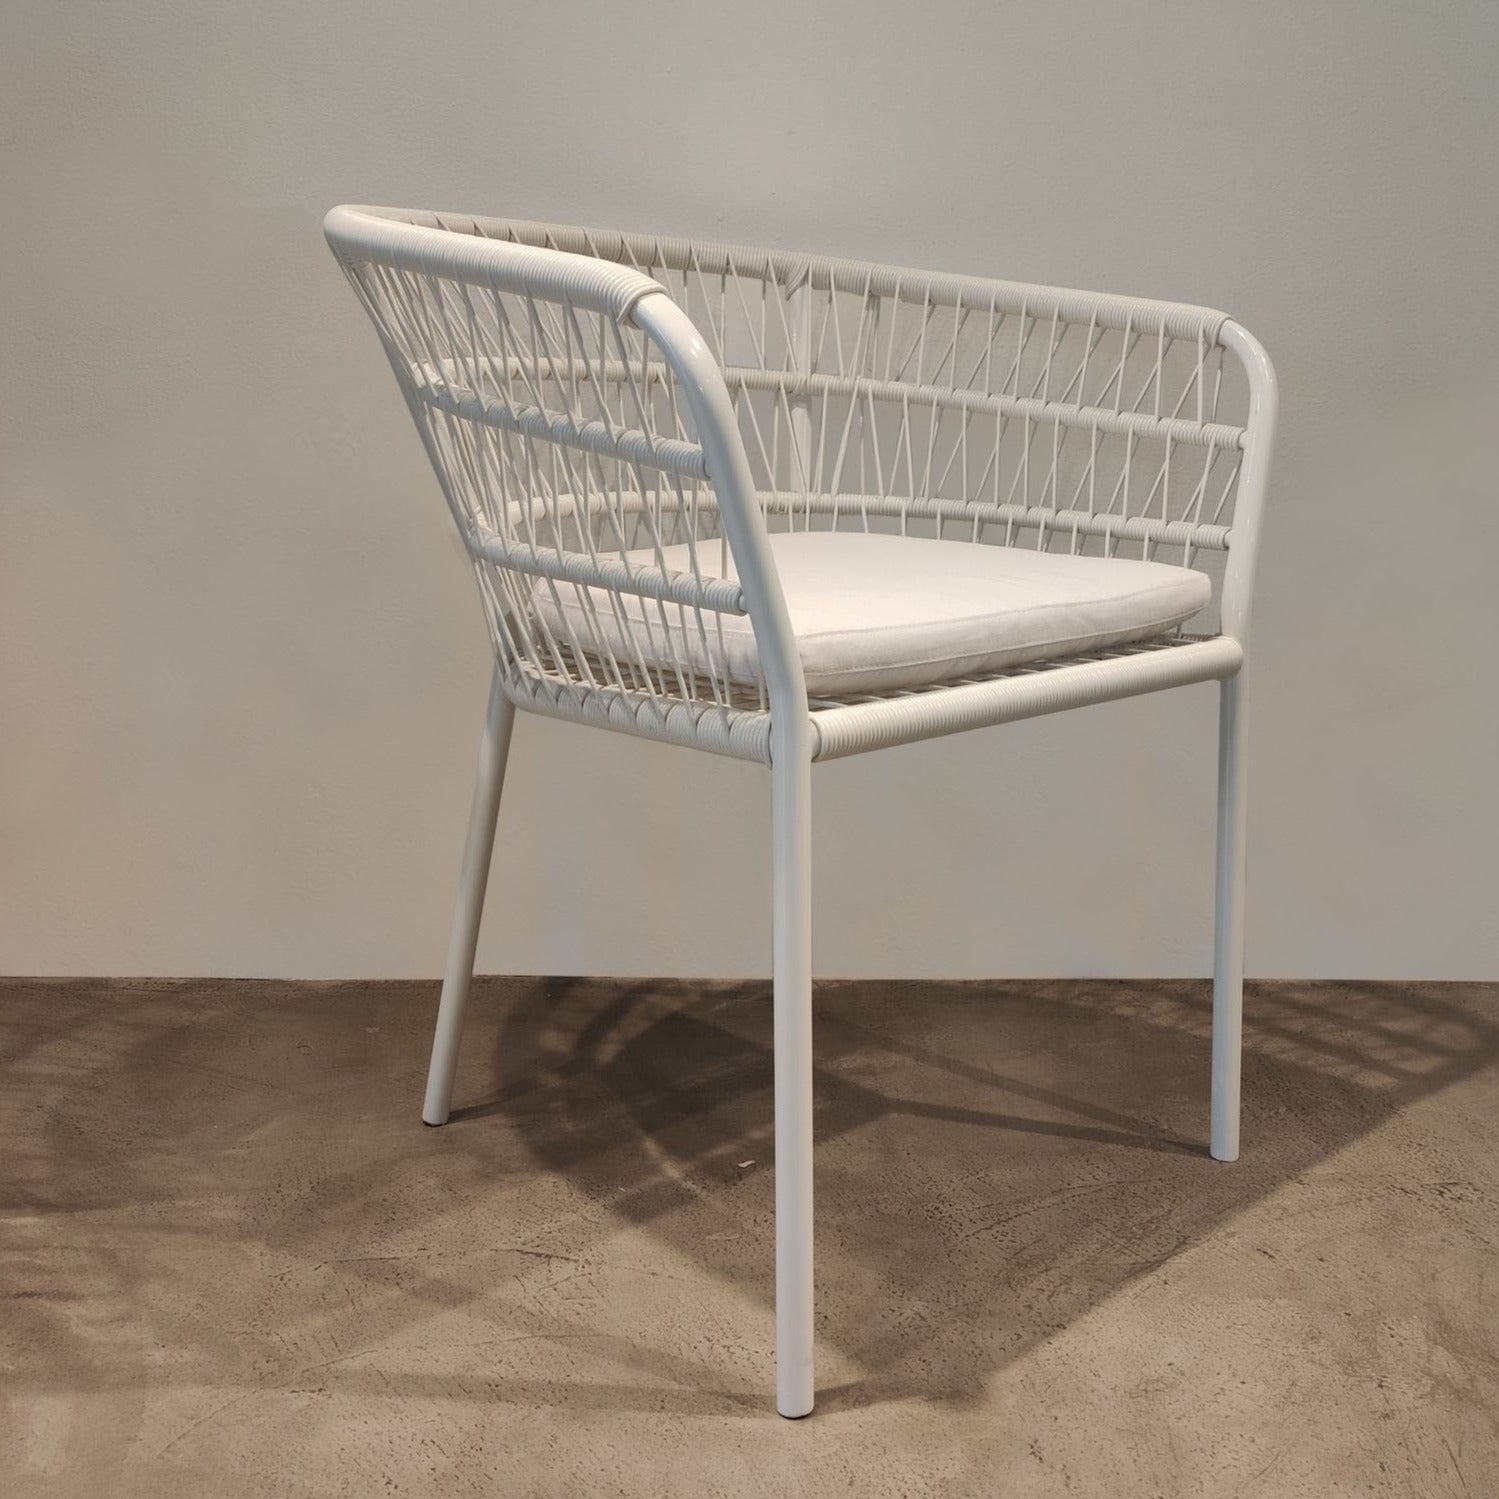 Silla de exterior blanca-Outdoor chair